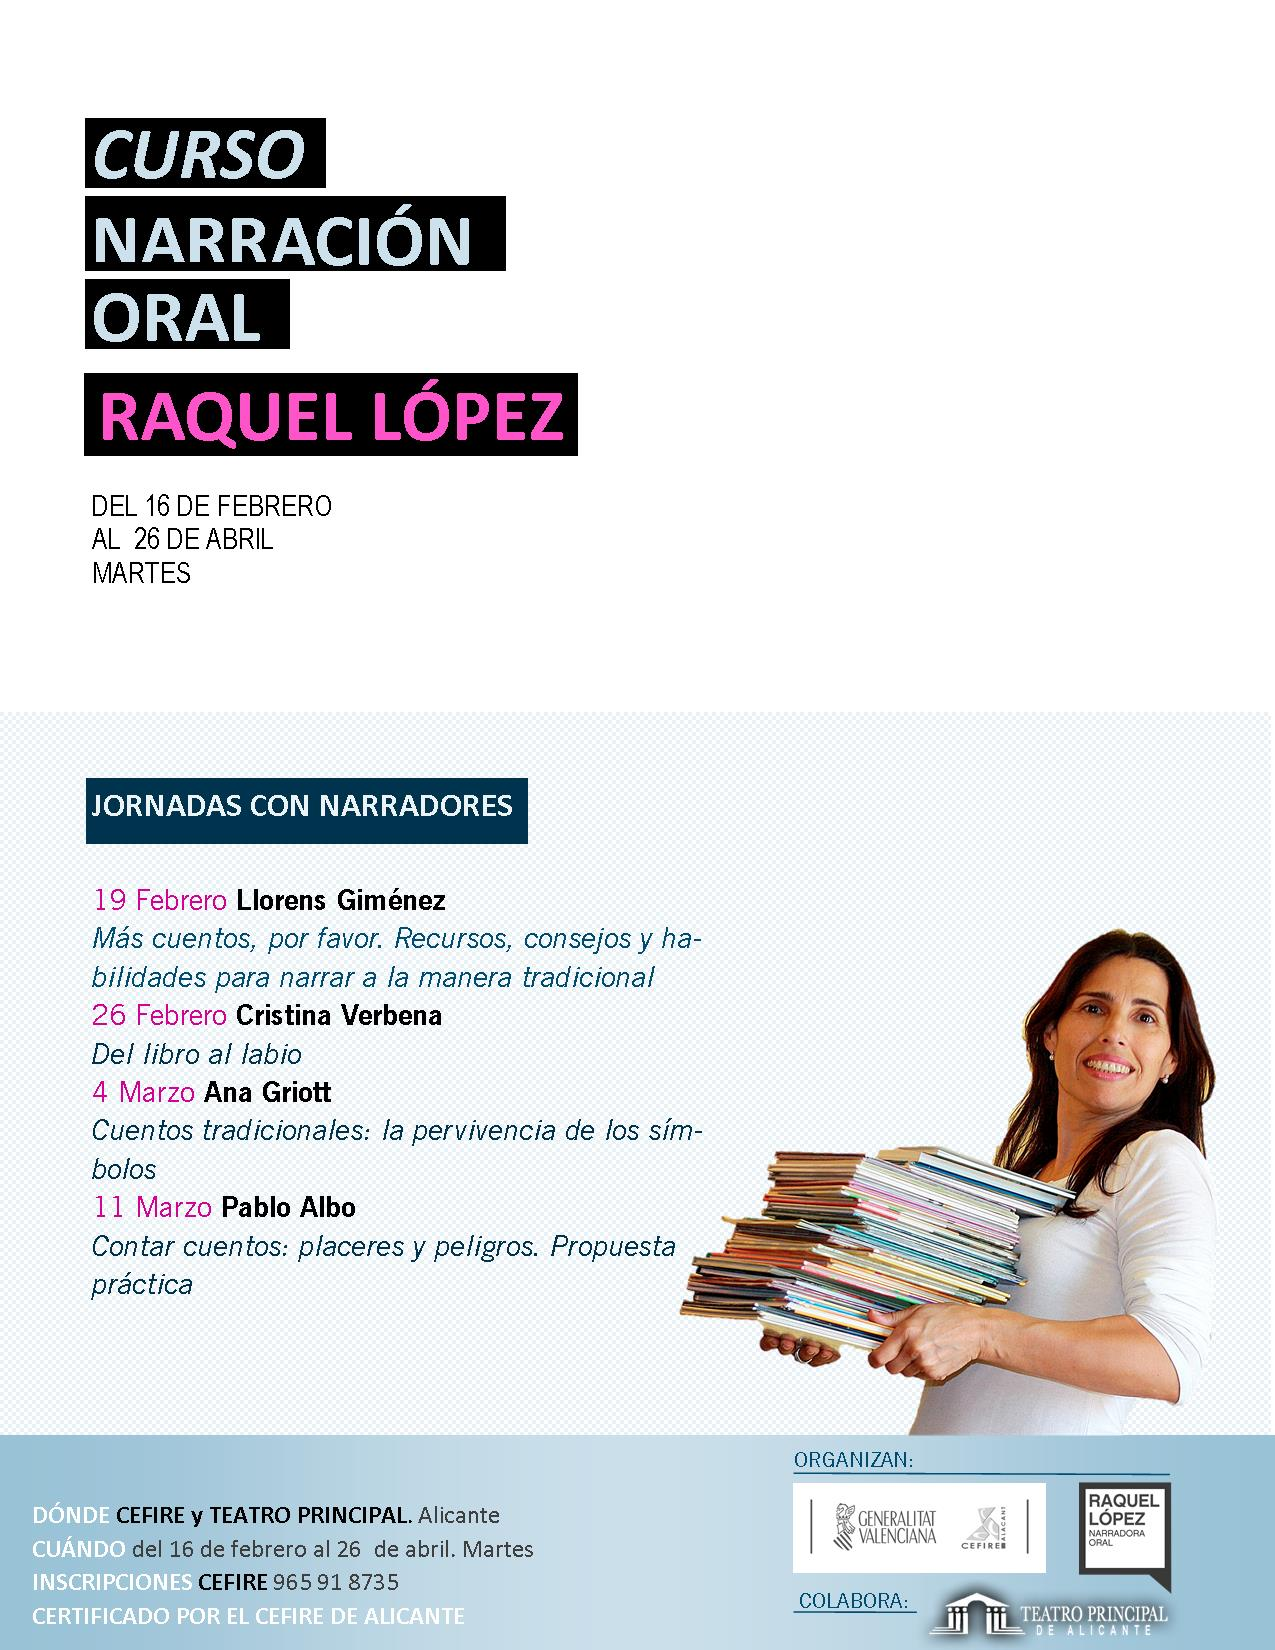 Curso de Narración